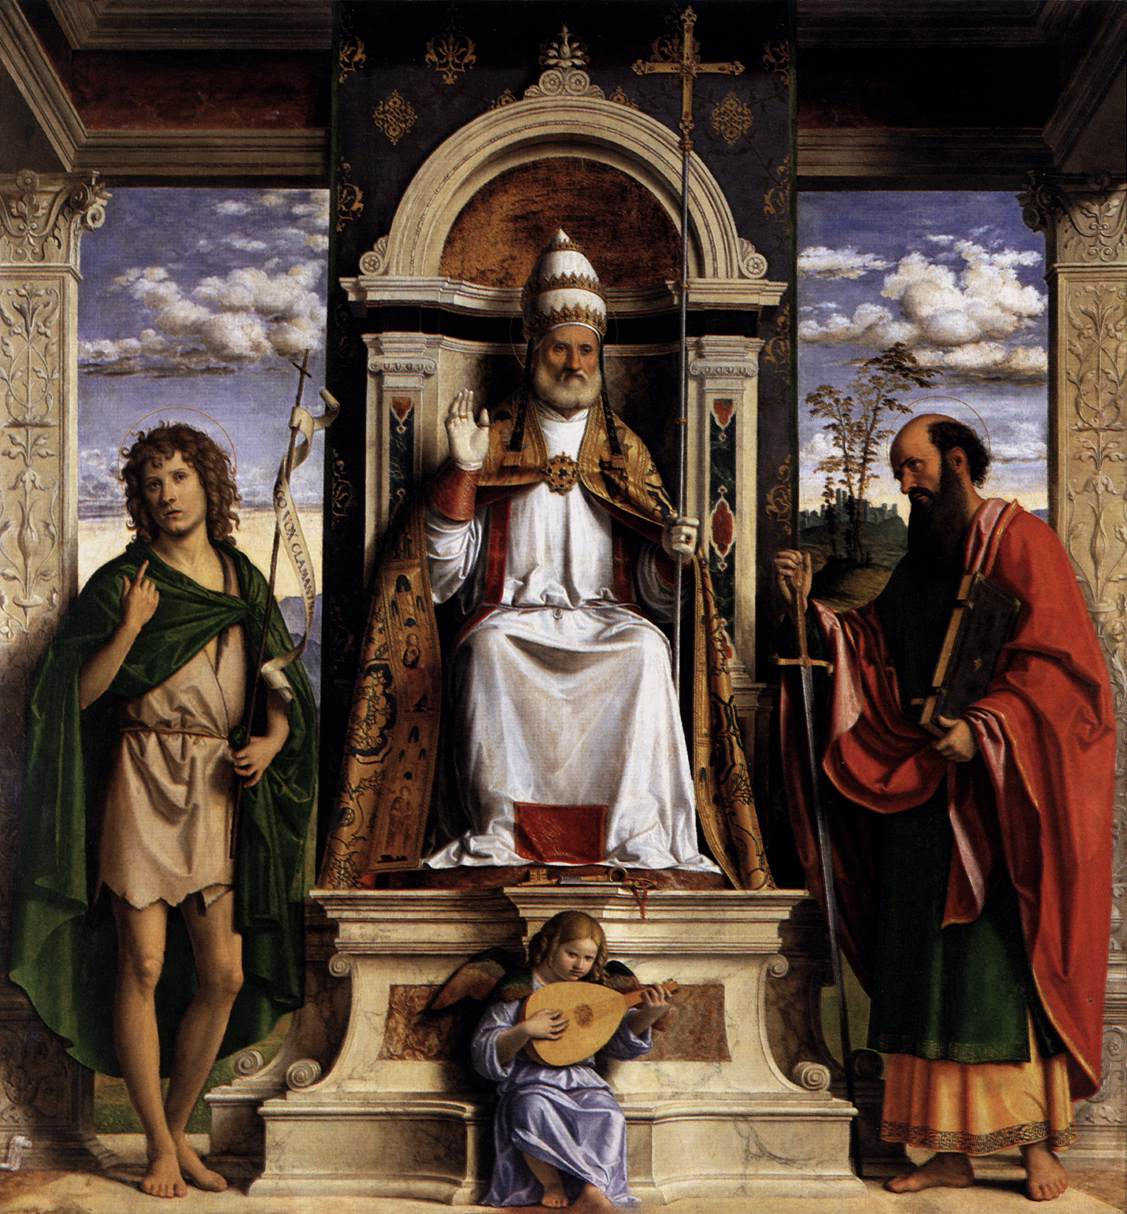 St. Peter Enthroned with Saints